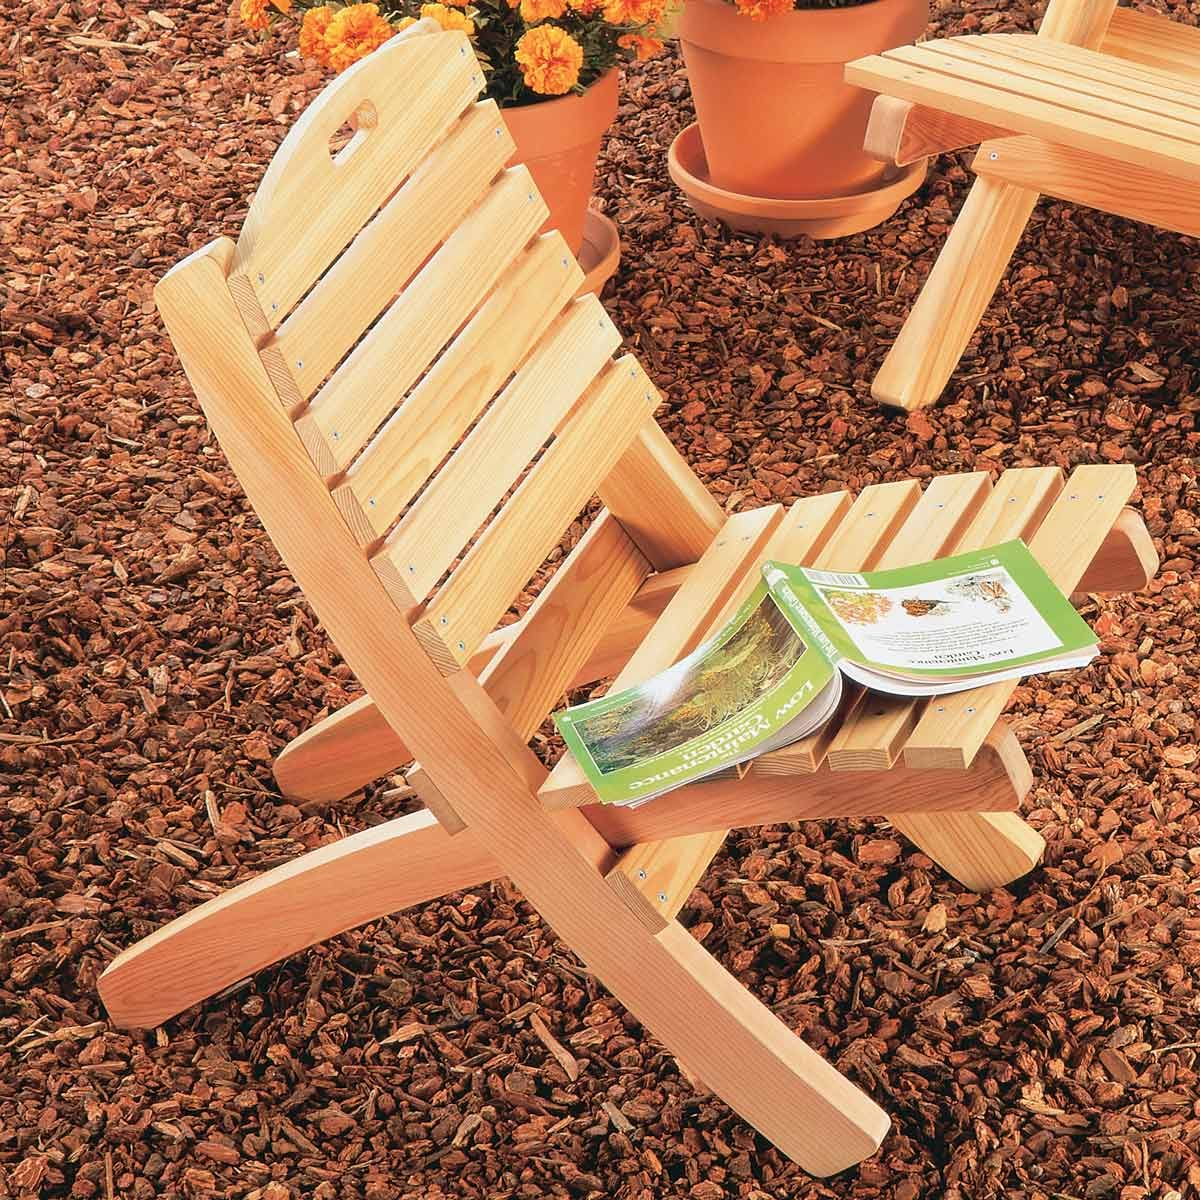 Build a Foldable Patio Chair